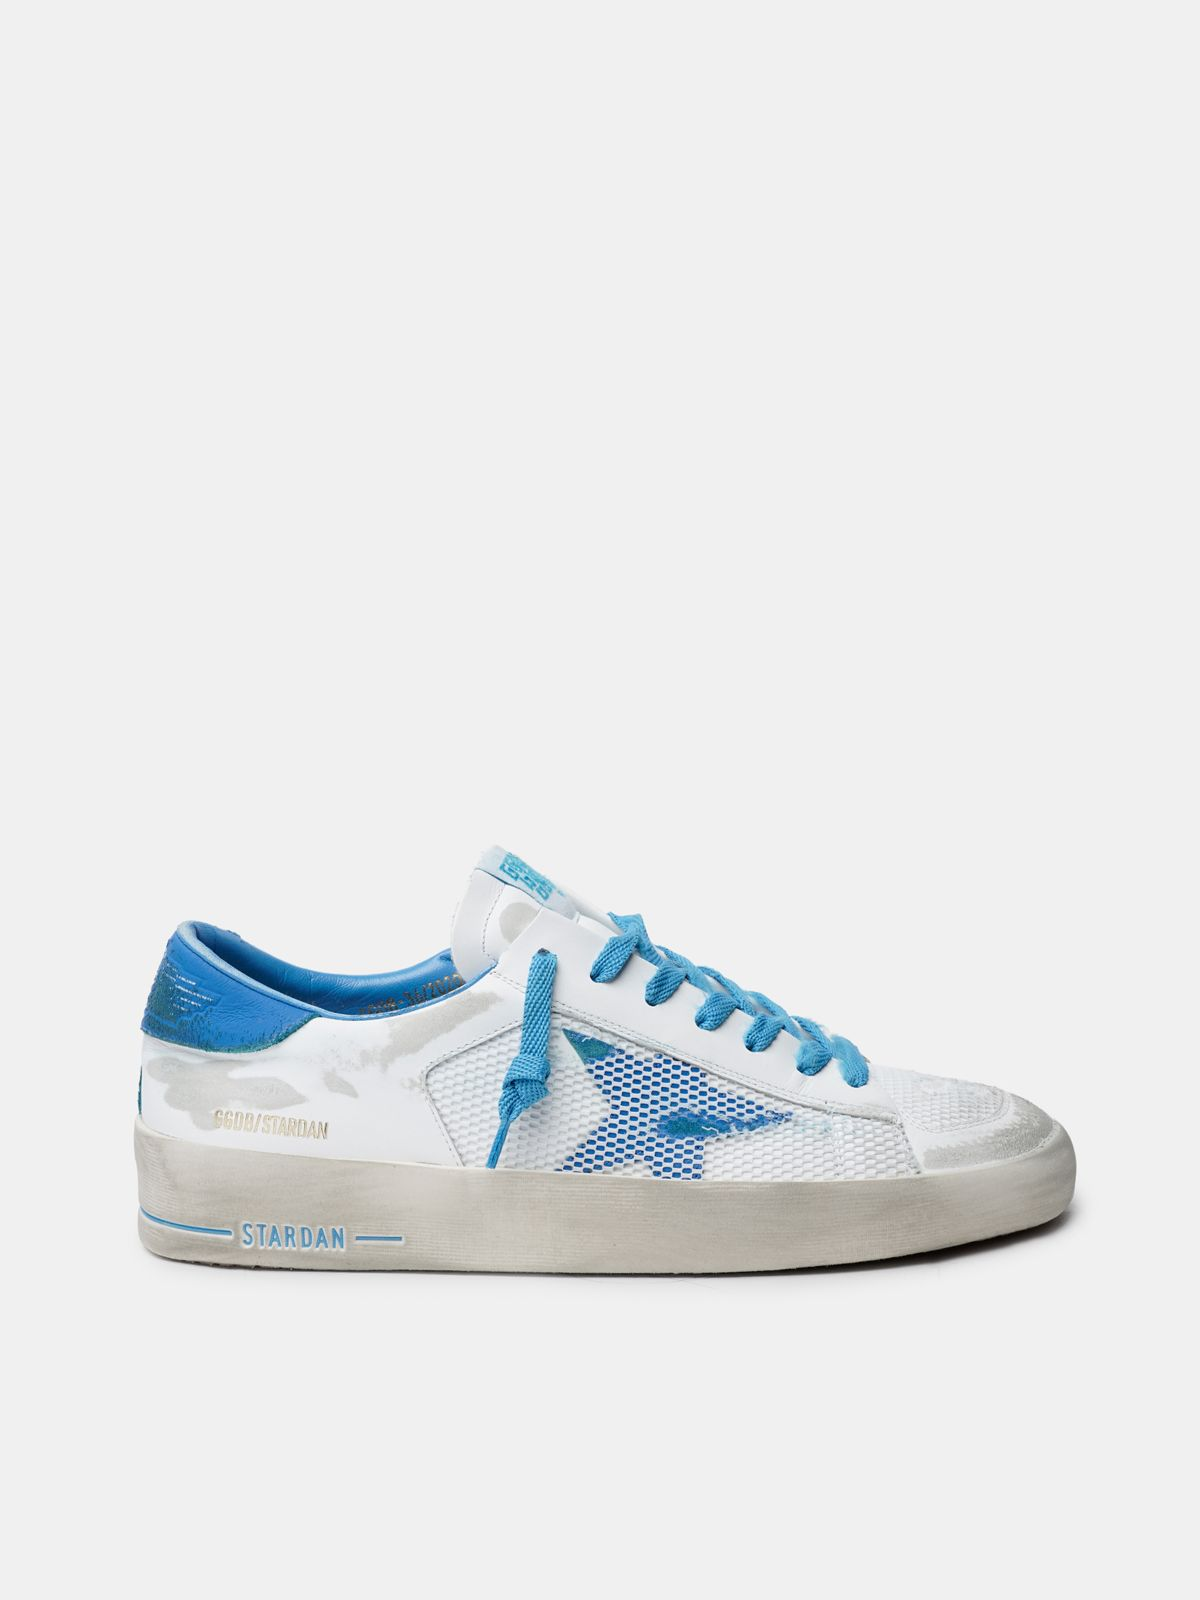 White and light blue Stardan sneakers